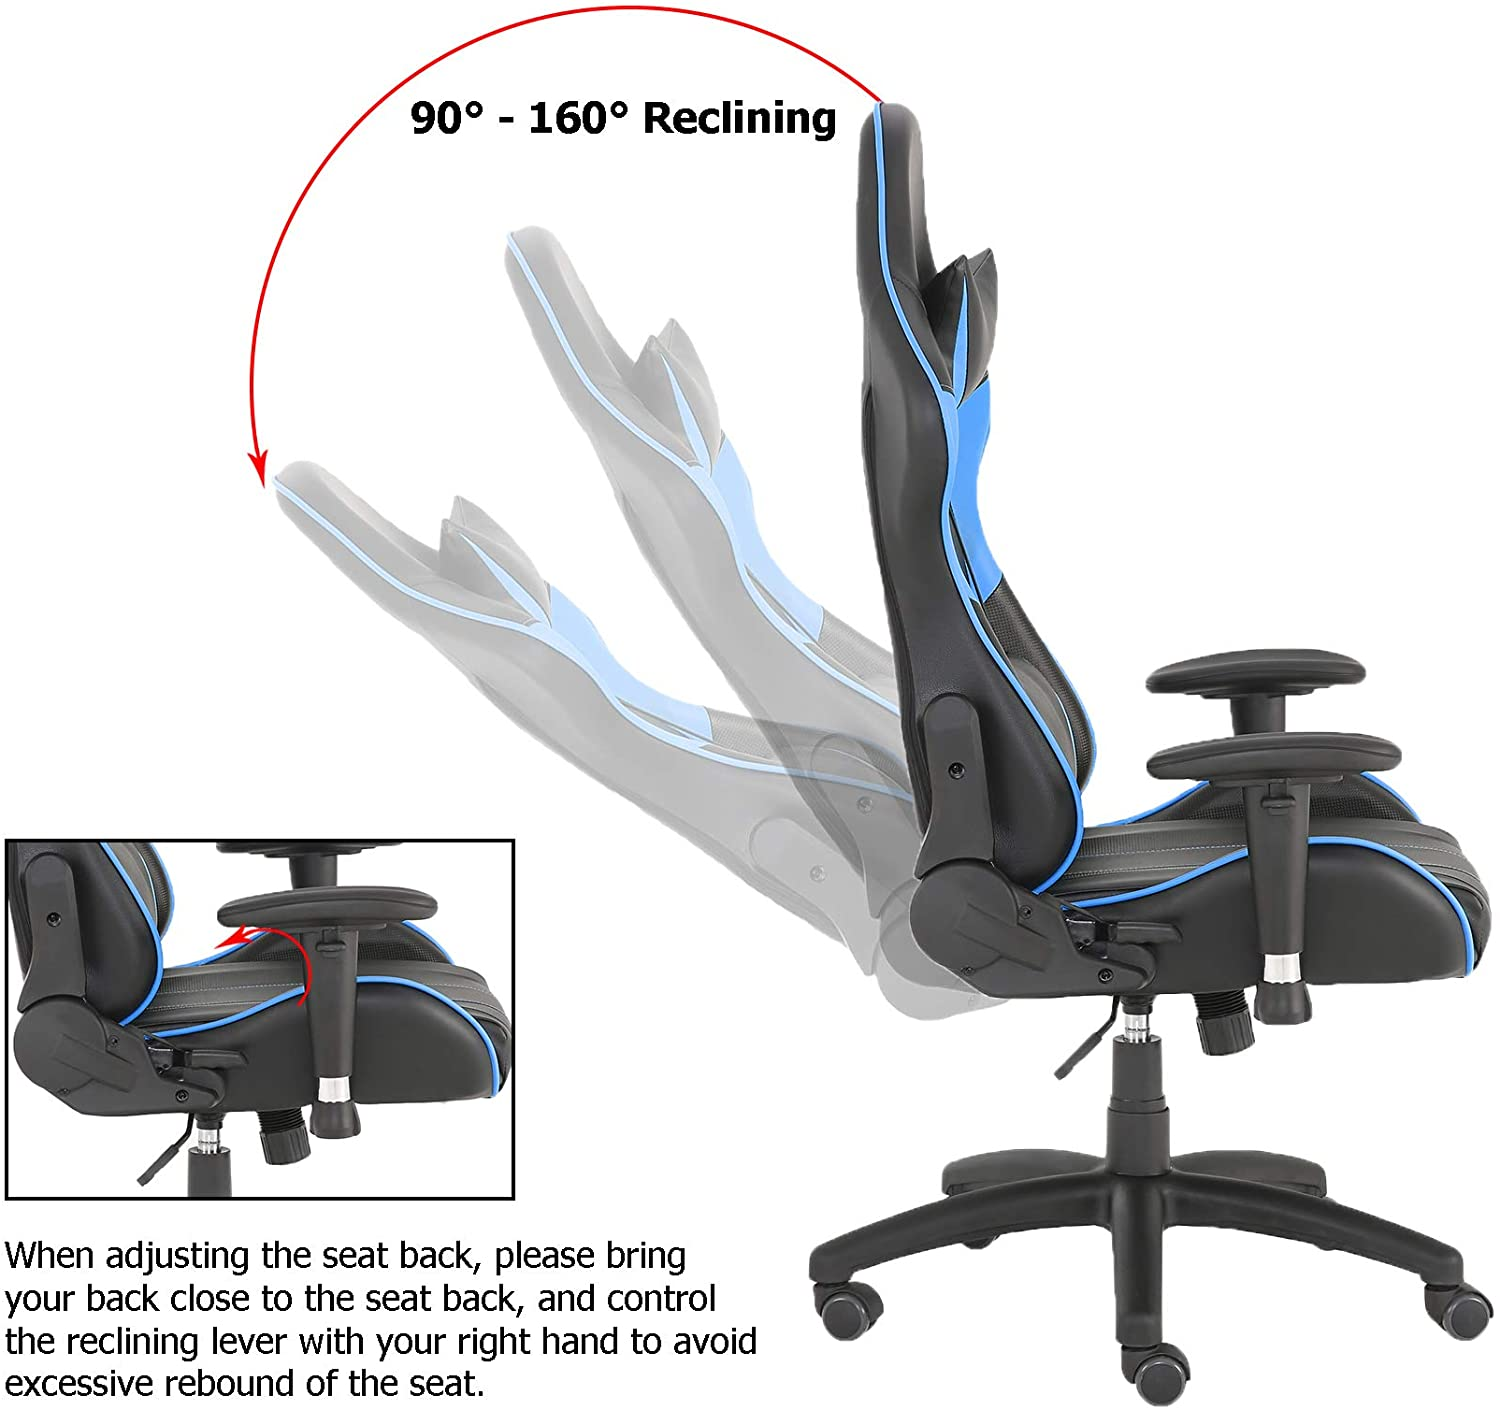 H03a0d20aa2ec4ecbbb9ae44adb59efb4e - Racer Gaming Office Chairs 180 Degree Spin Lounger Computer Chair,Comfortable Armchair Executive Computer Seat,PU Leather